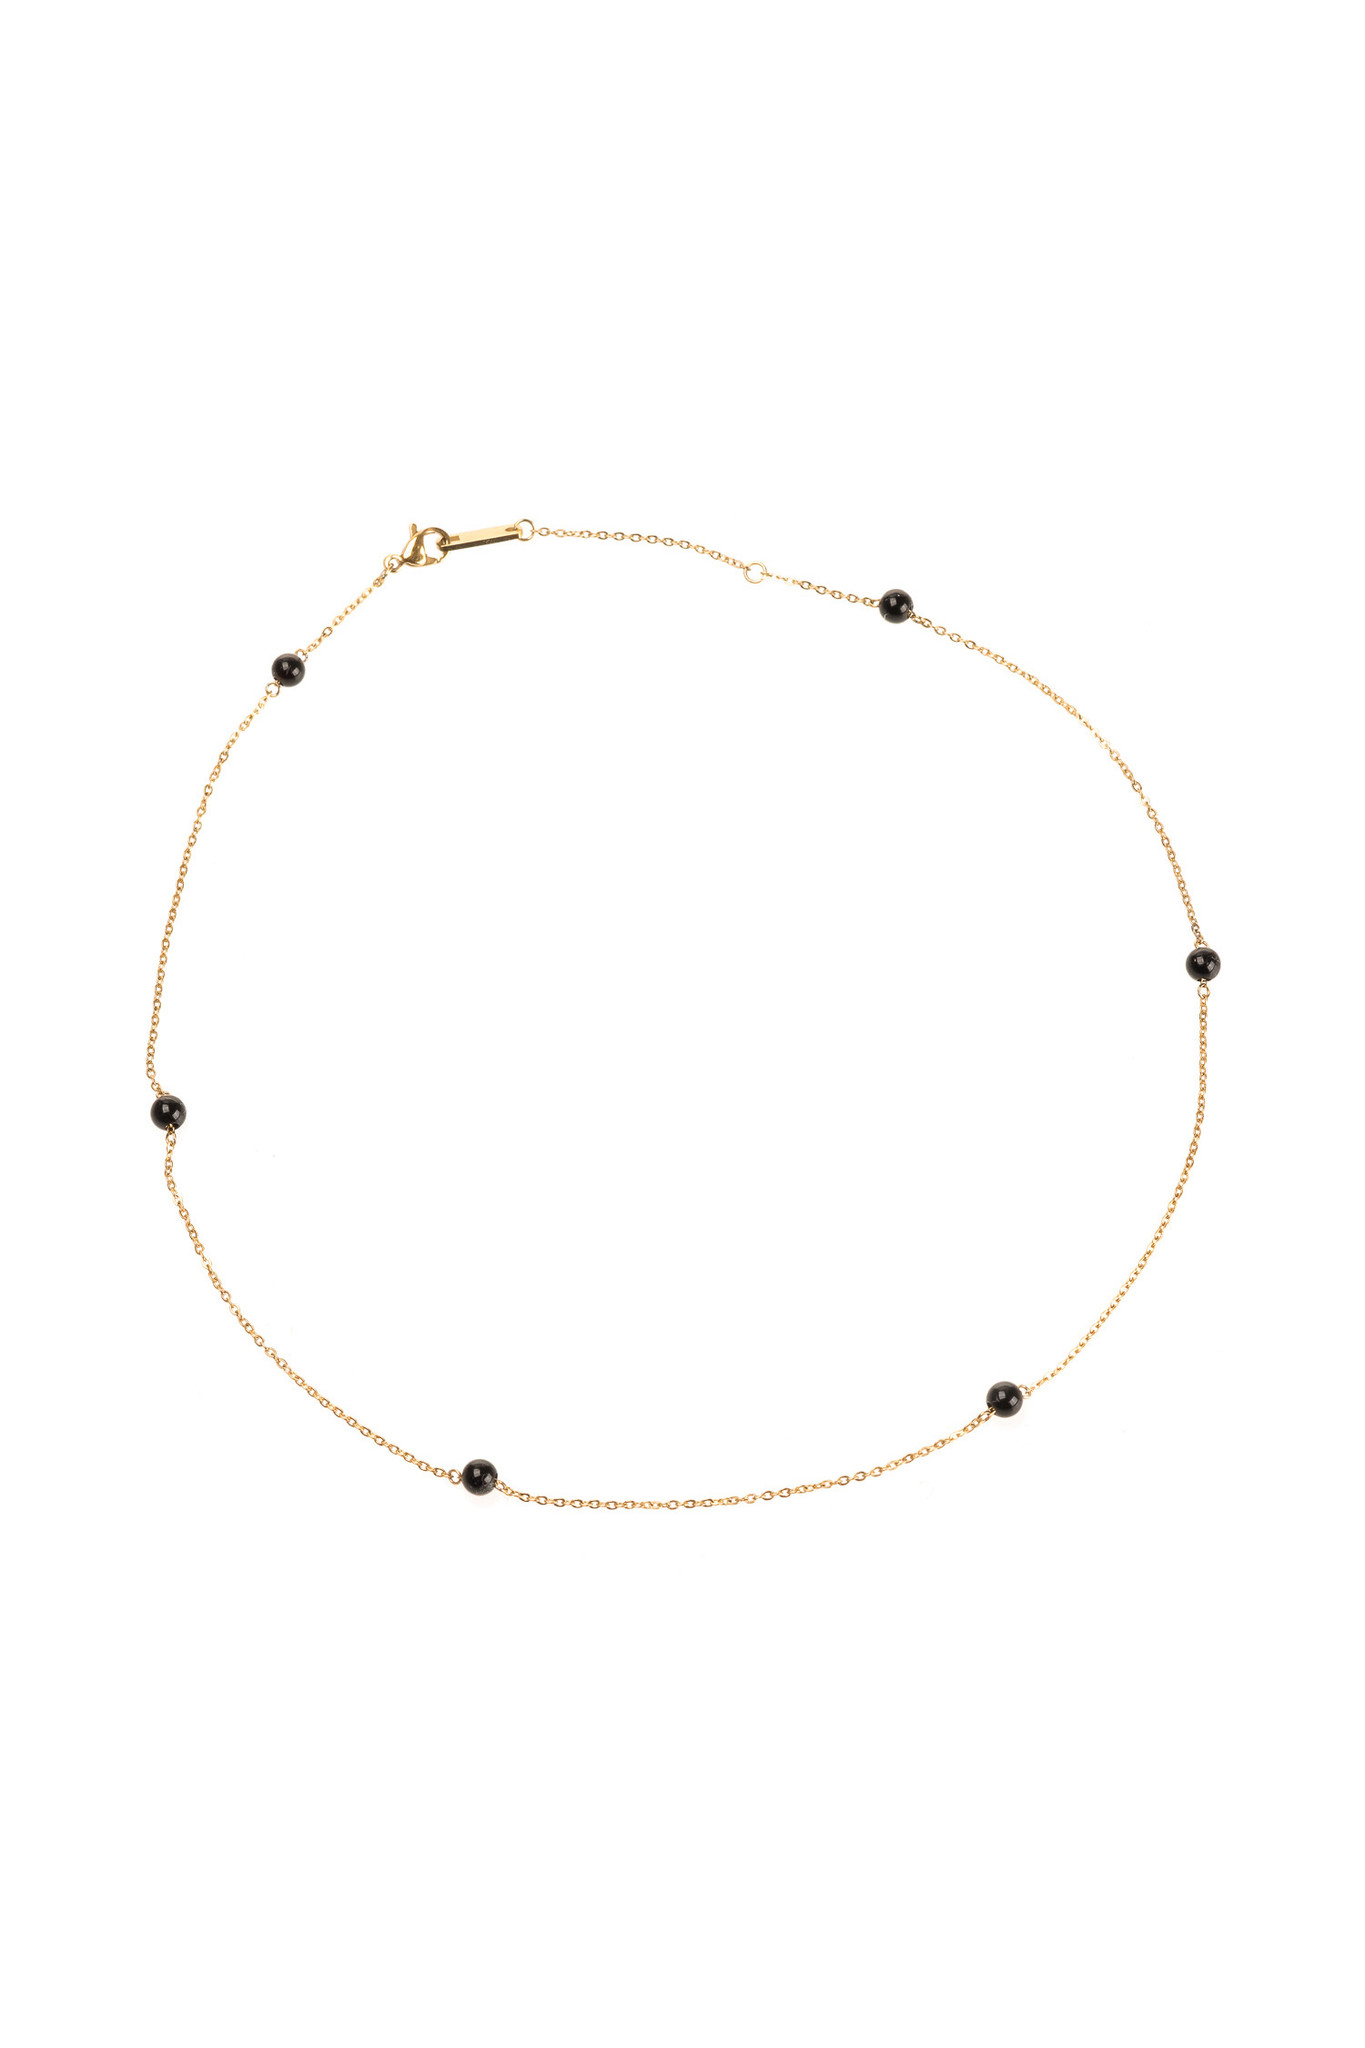 Energy Muse Necklace - Gold with Black Onyx-1